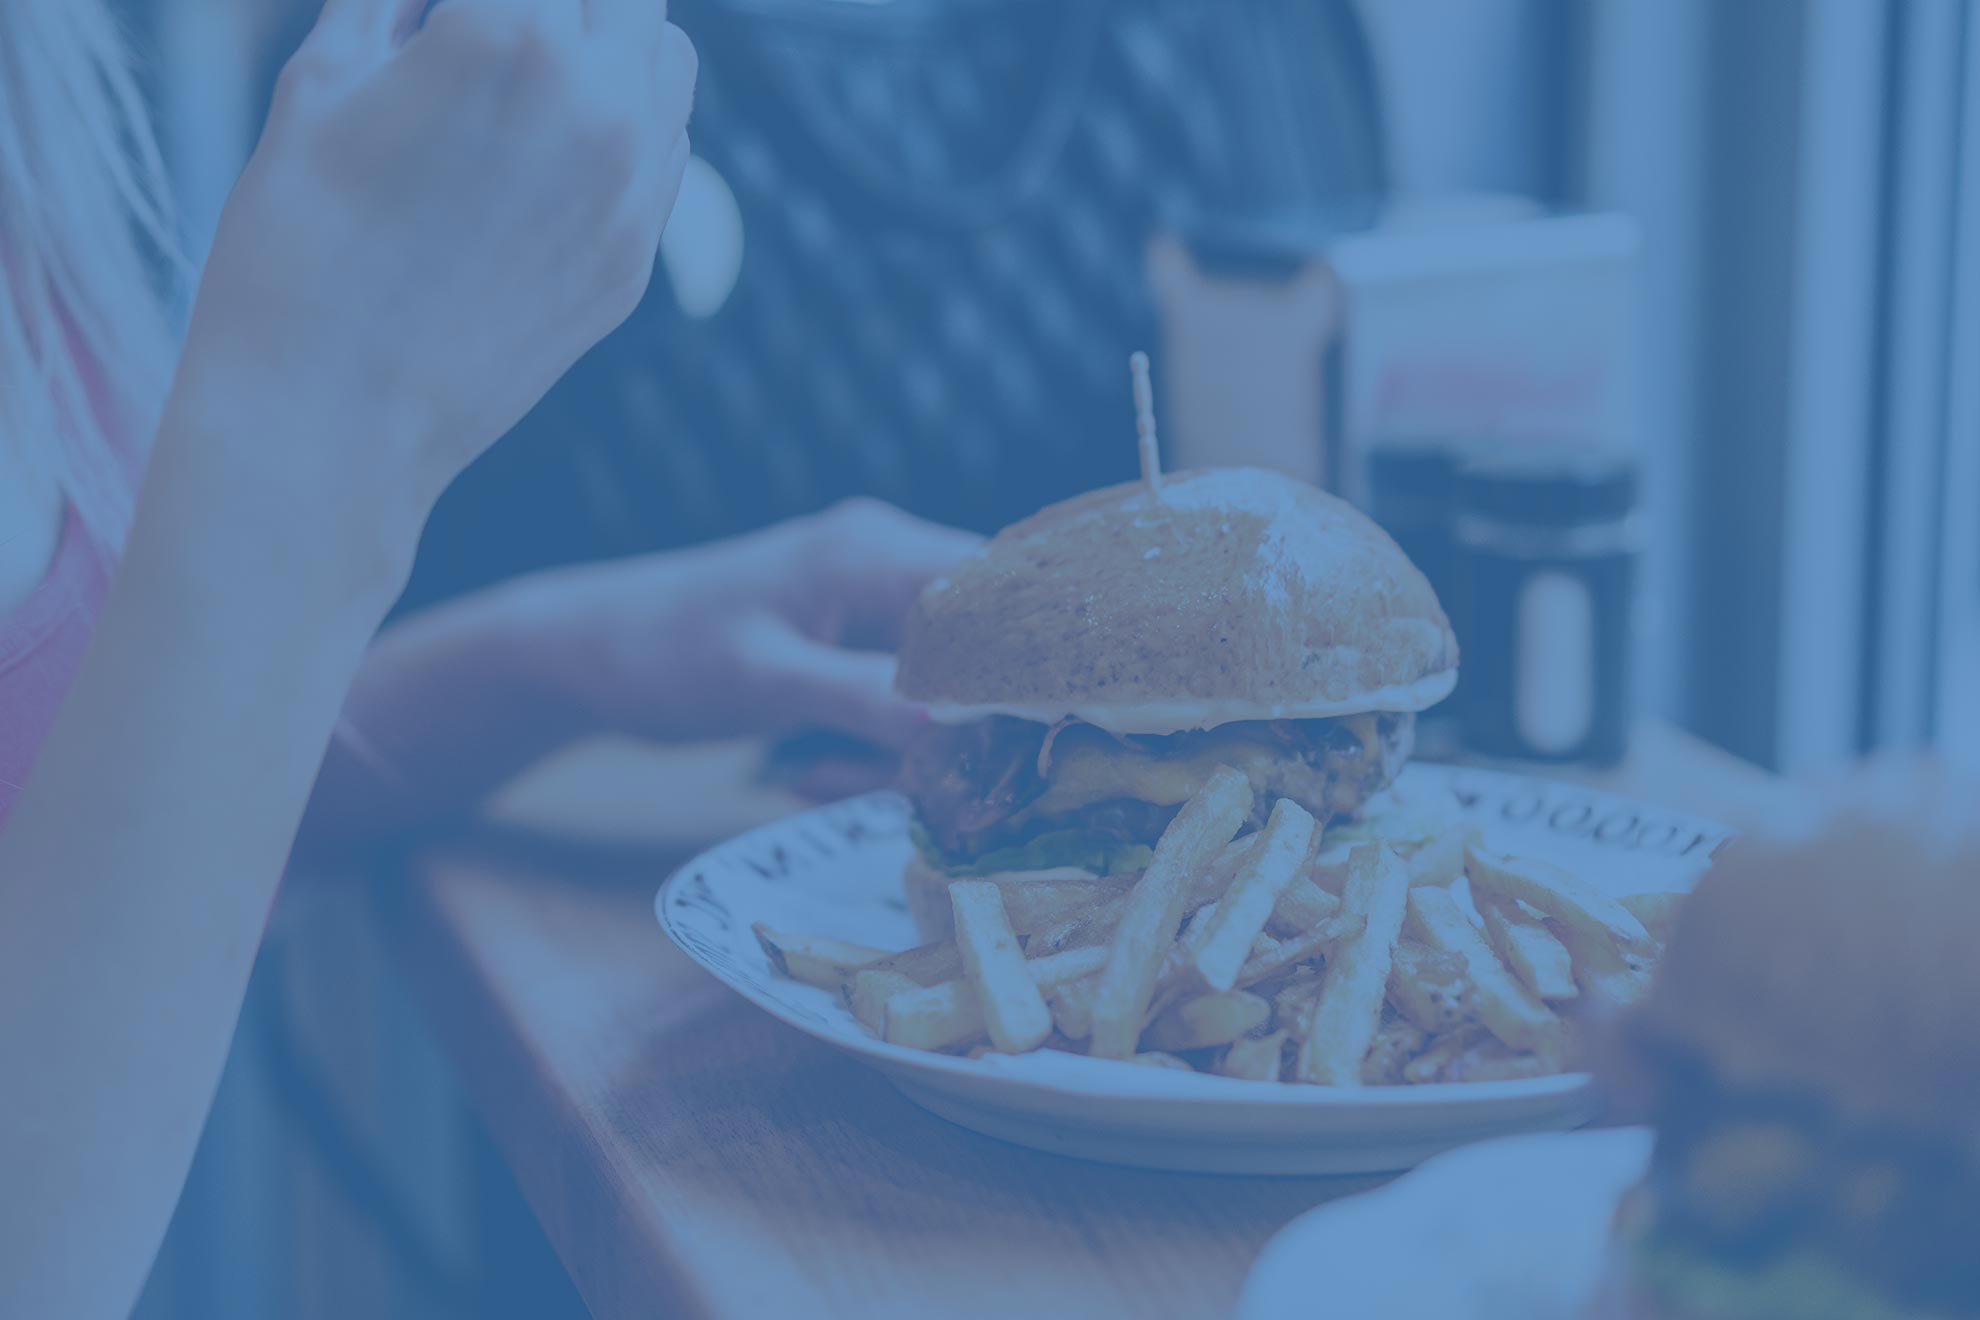 Dining Background image showing hamburger and french fries